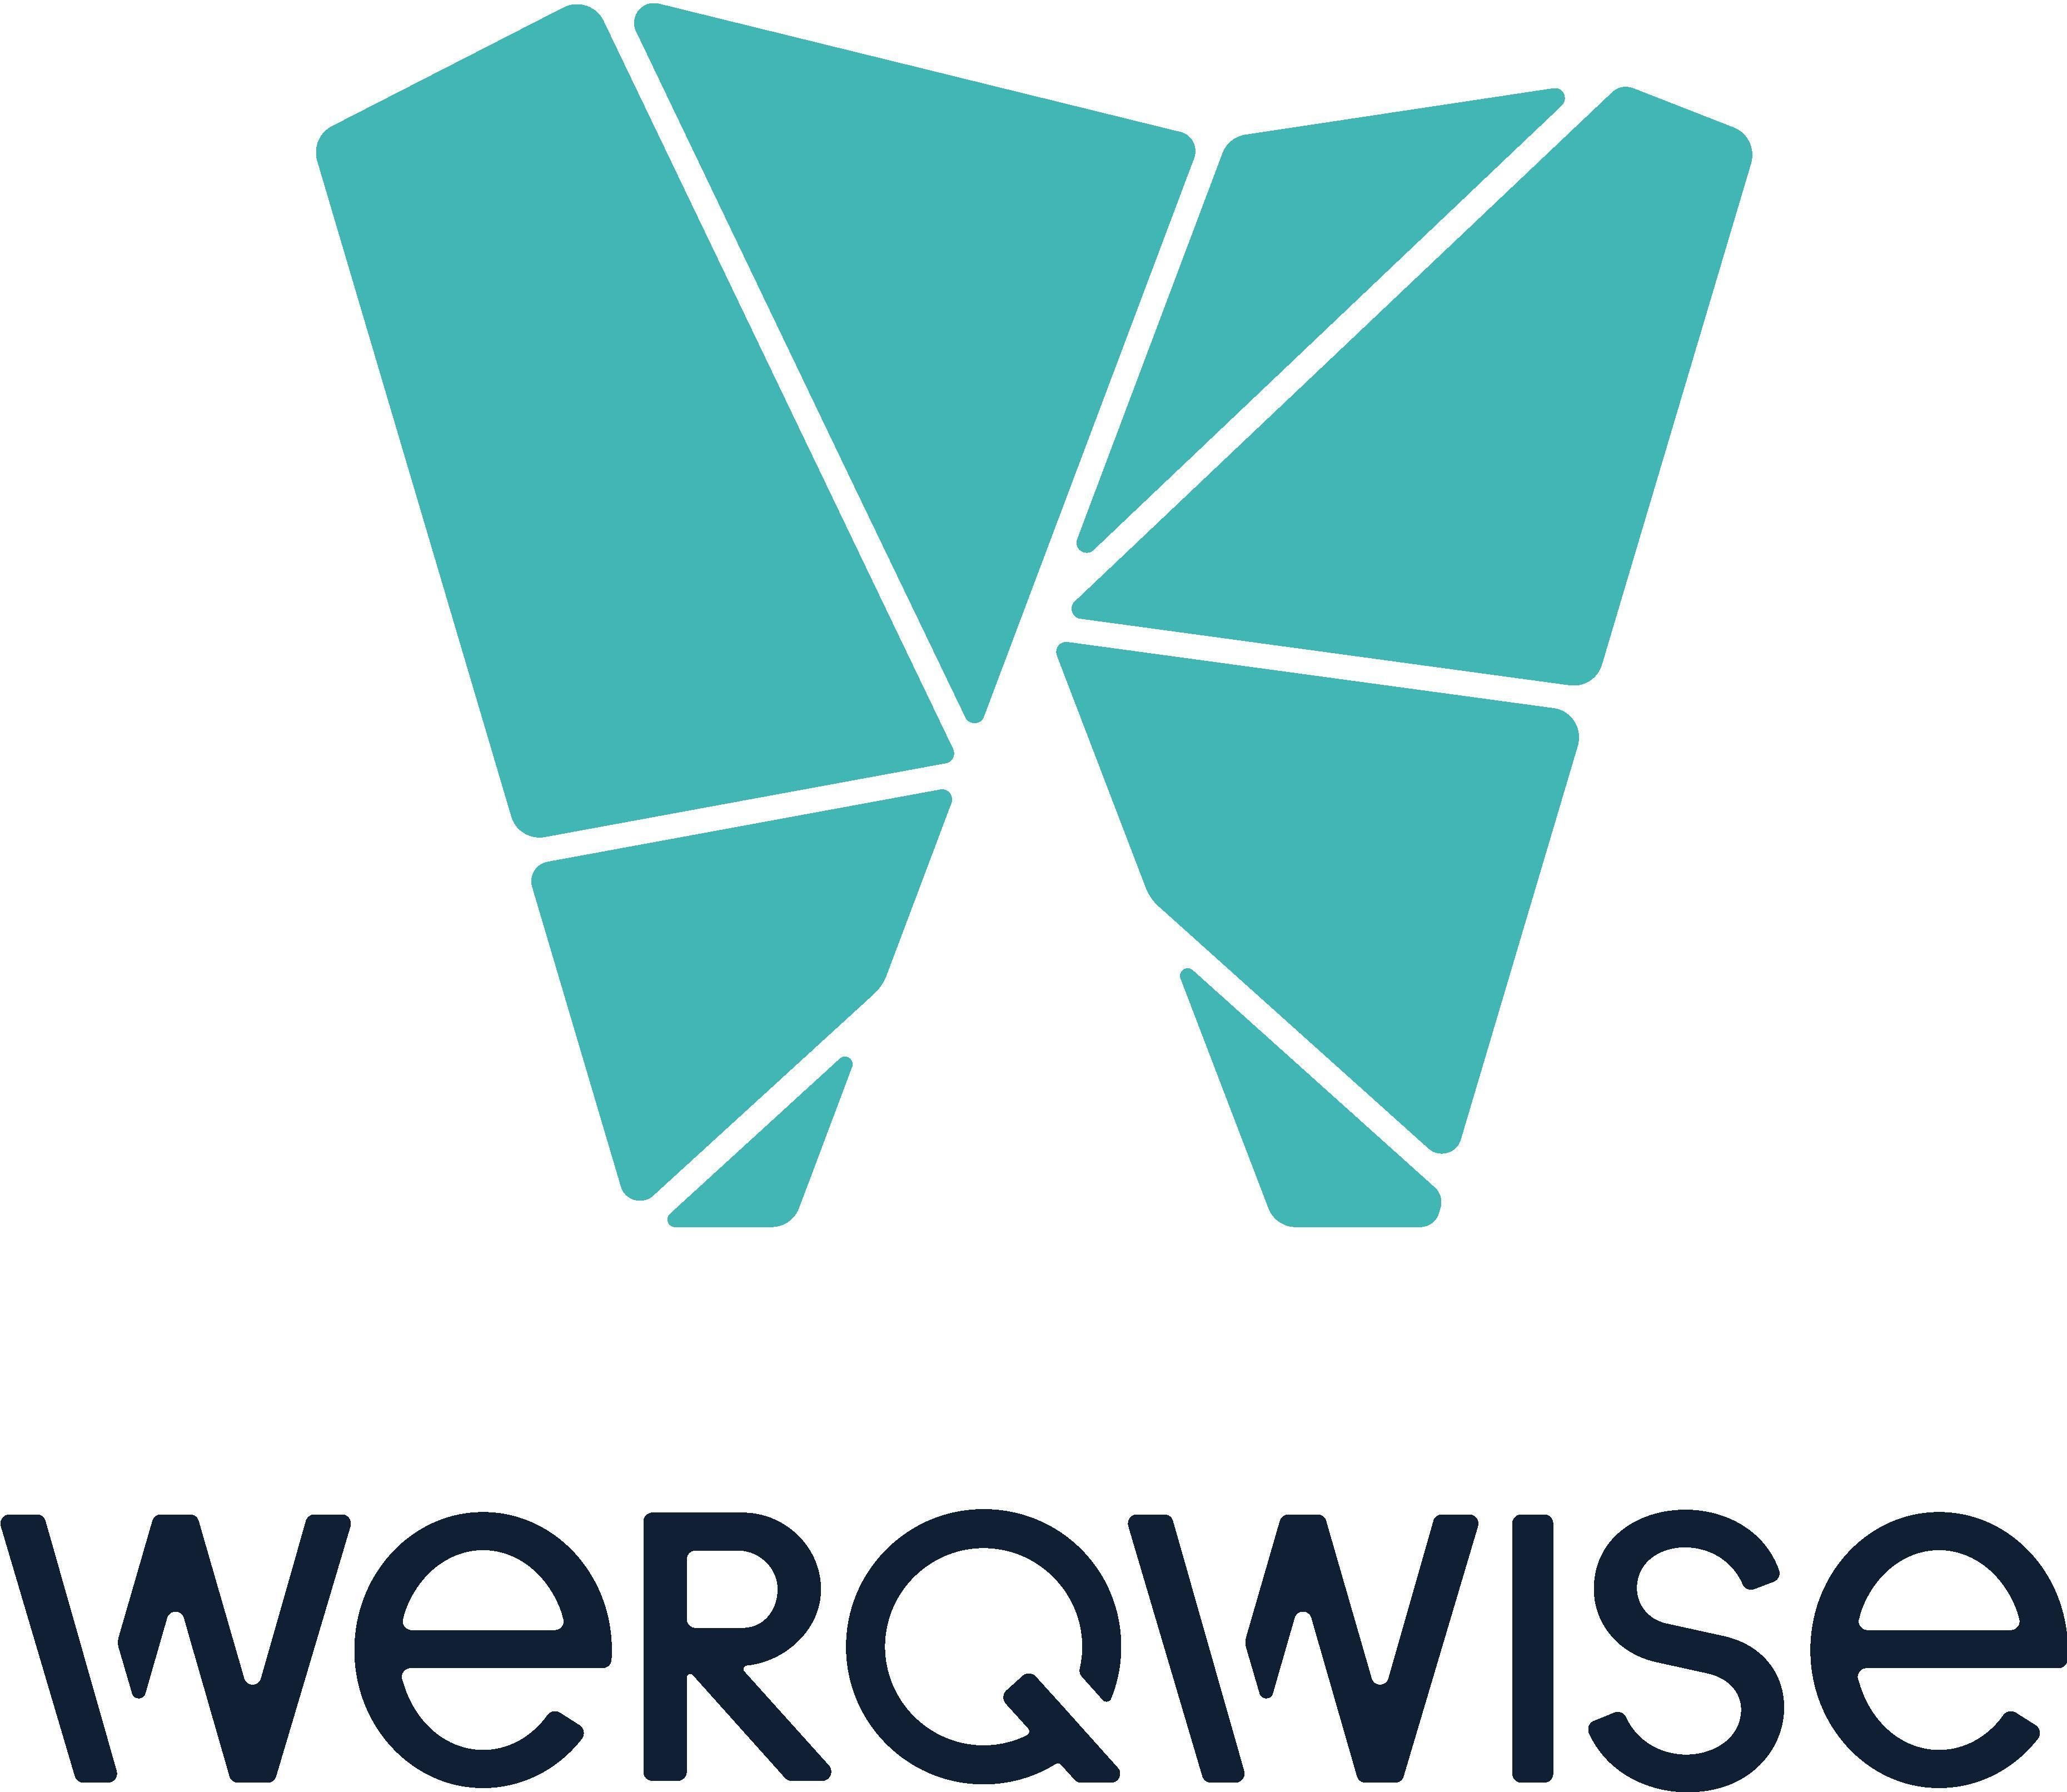 Logo of Werqwise